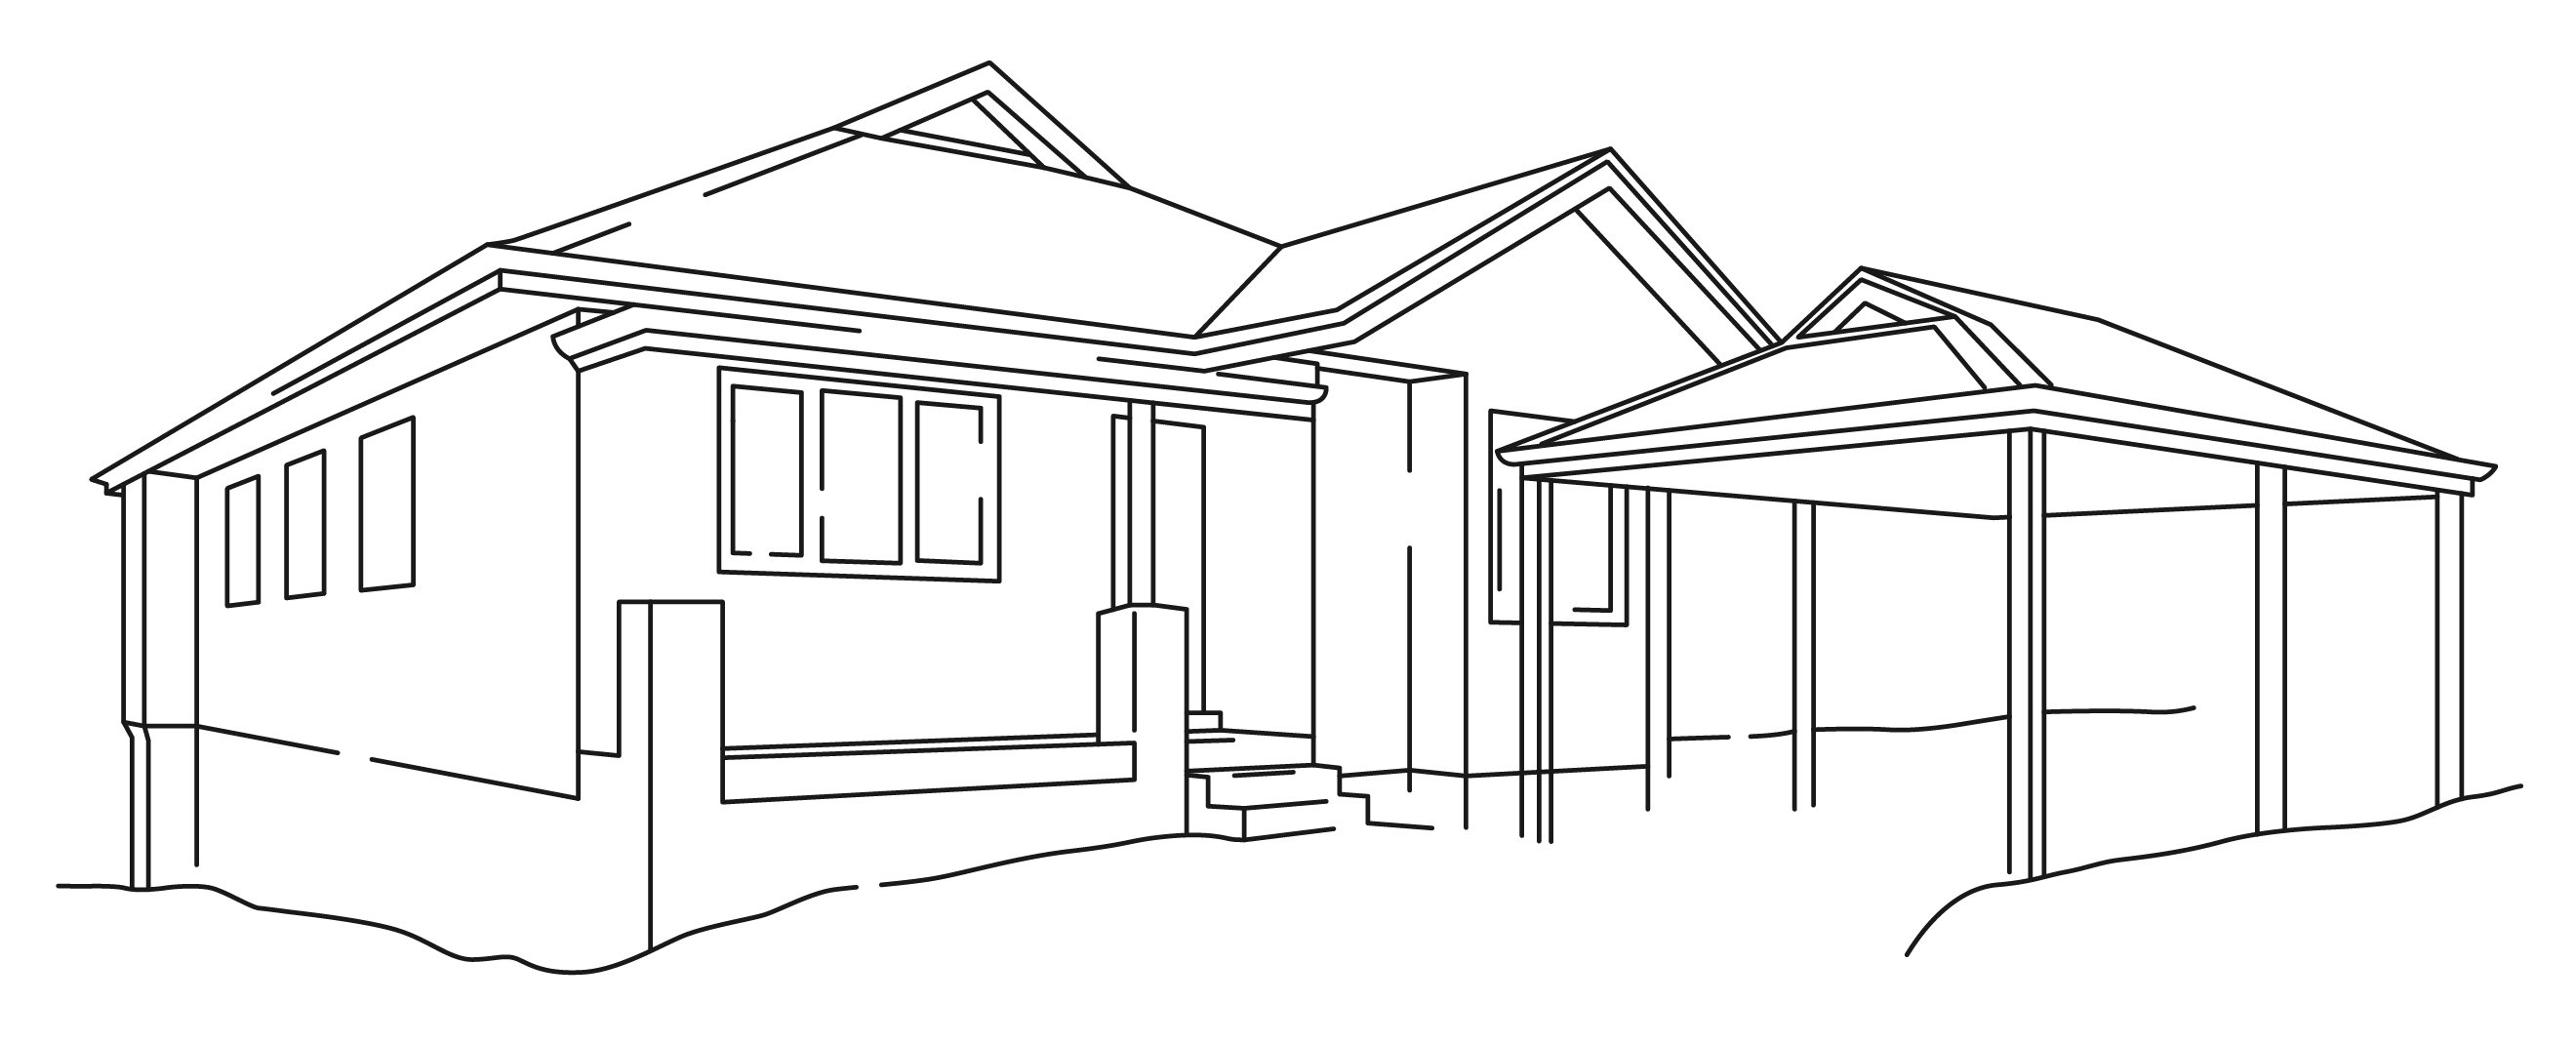 Granted Constructions - Passive House - Illustration